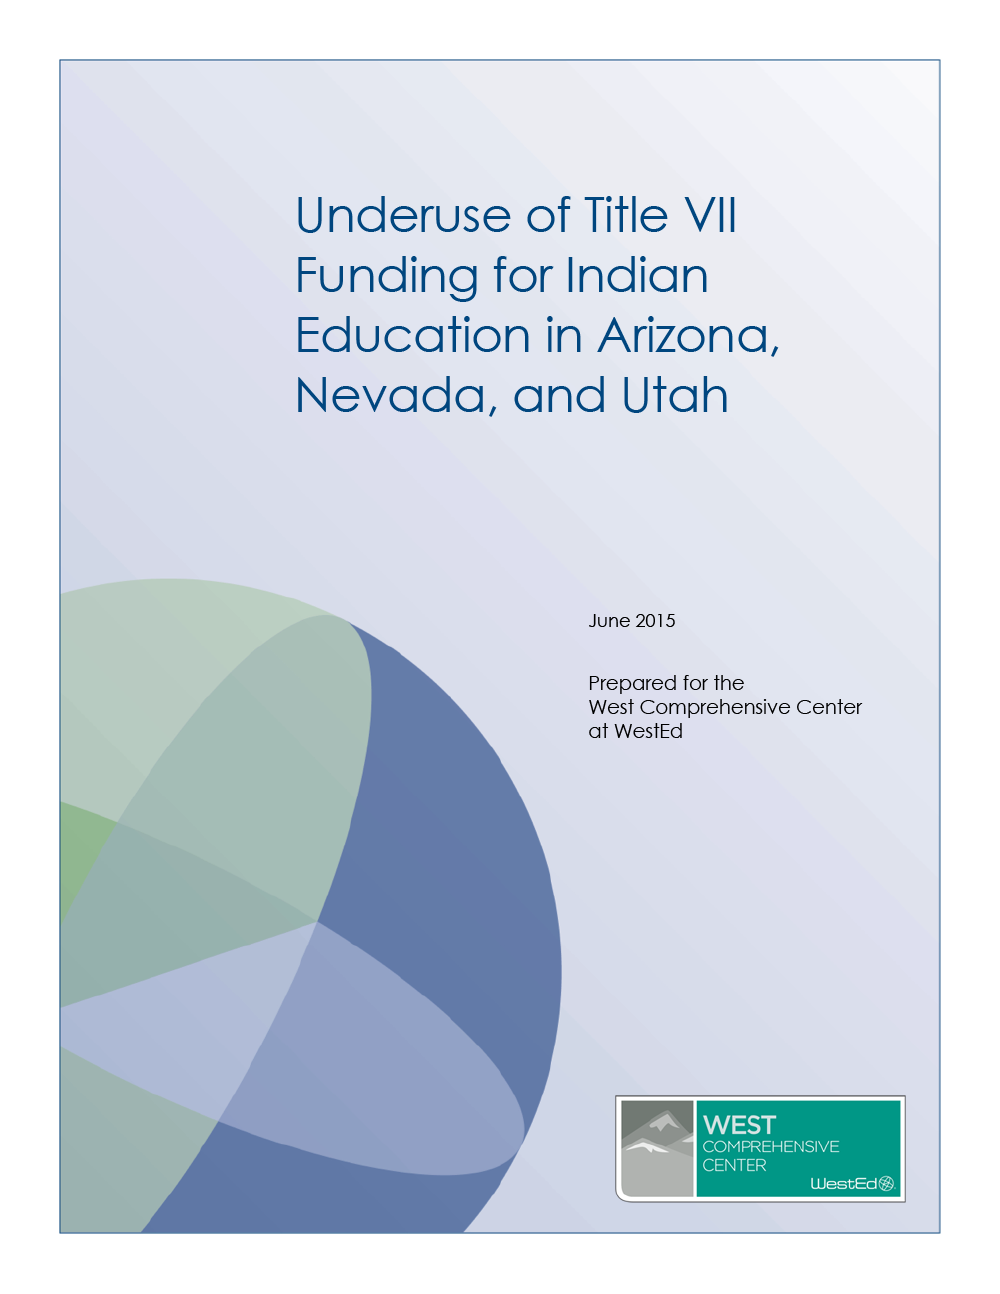 Cover of Underuse of Title VII Funding for Indian Education in Arizona, Nevada, and Utah